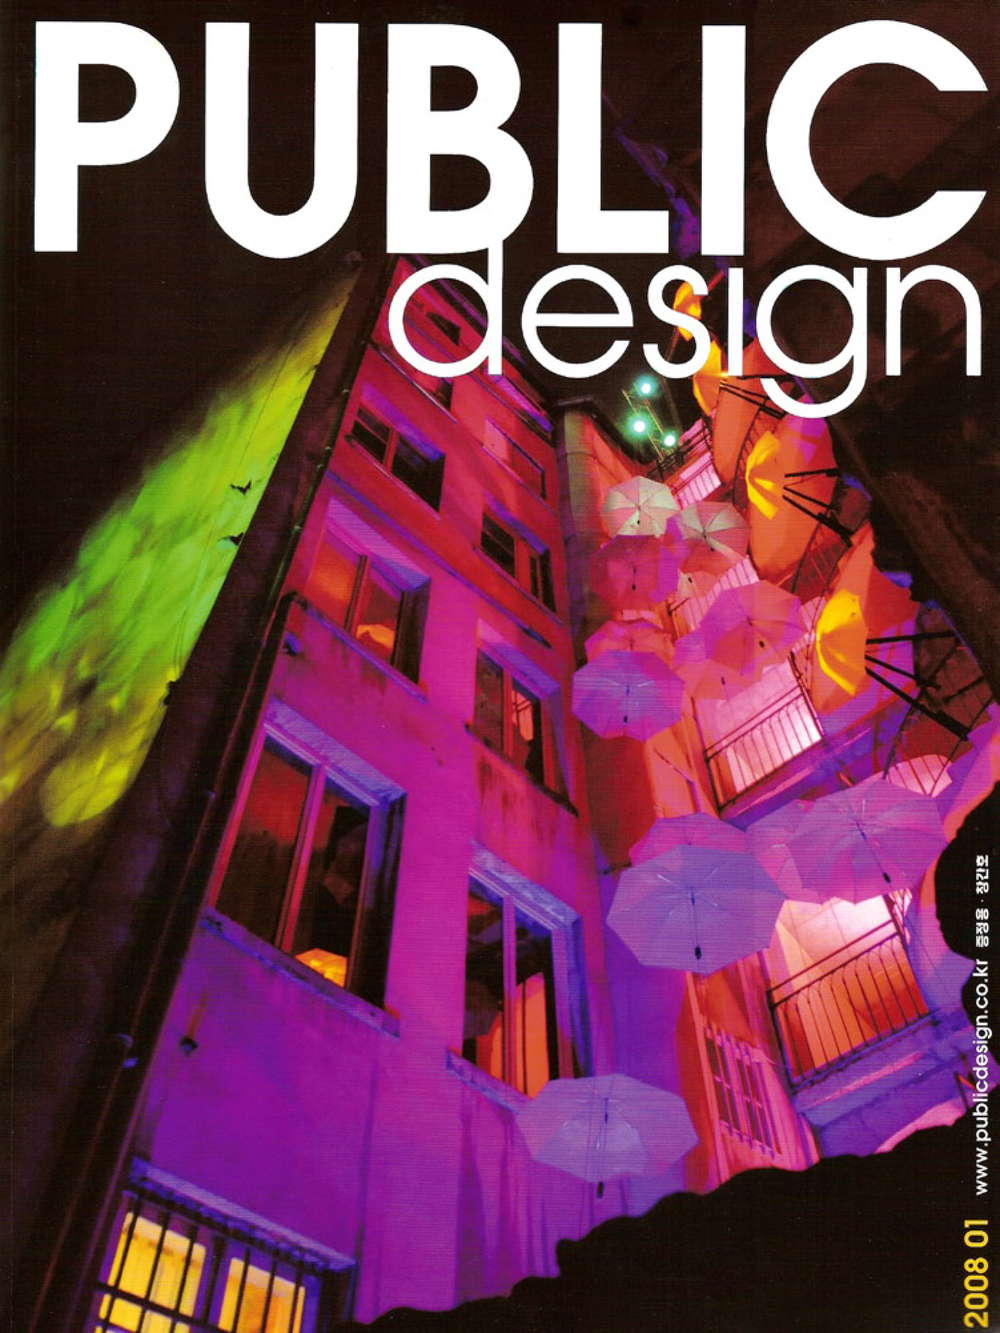 PUBLICDESIGN_KOREA-1.jpg